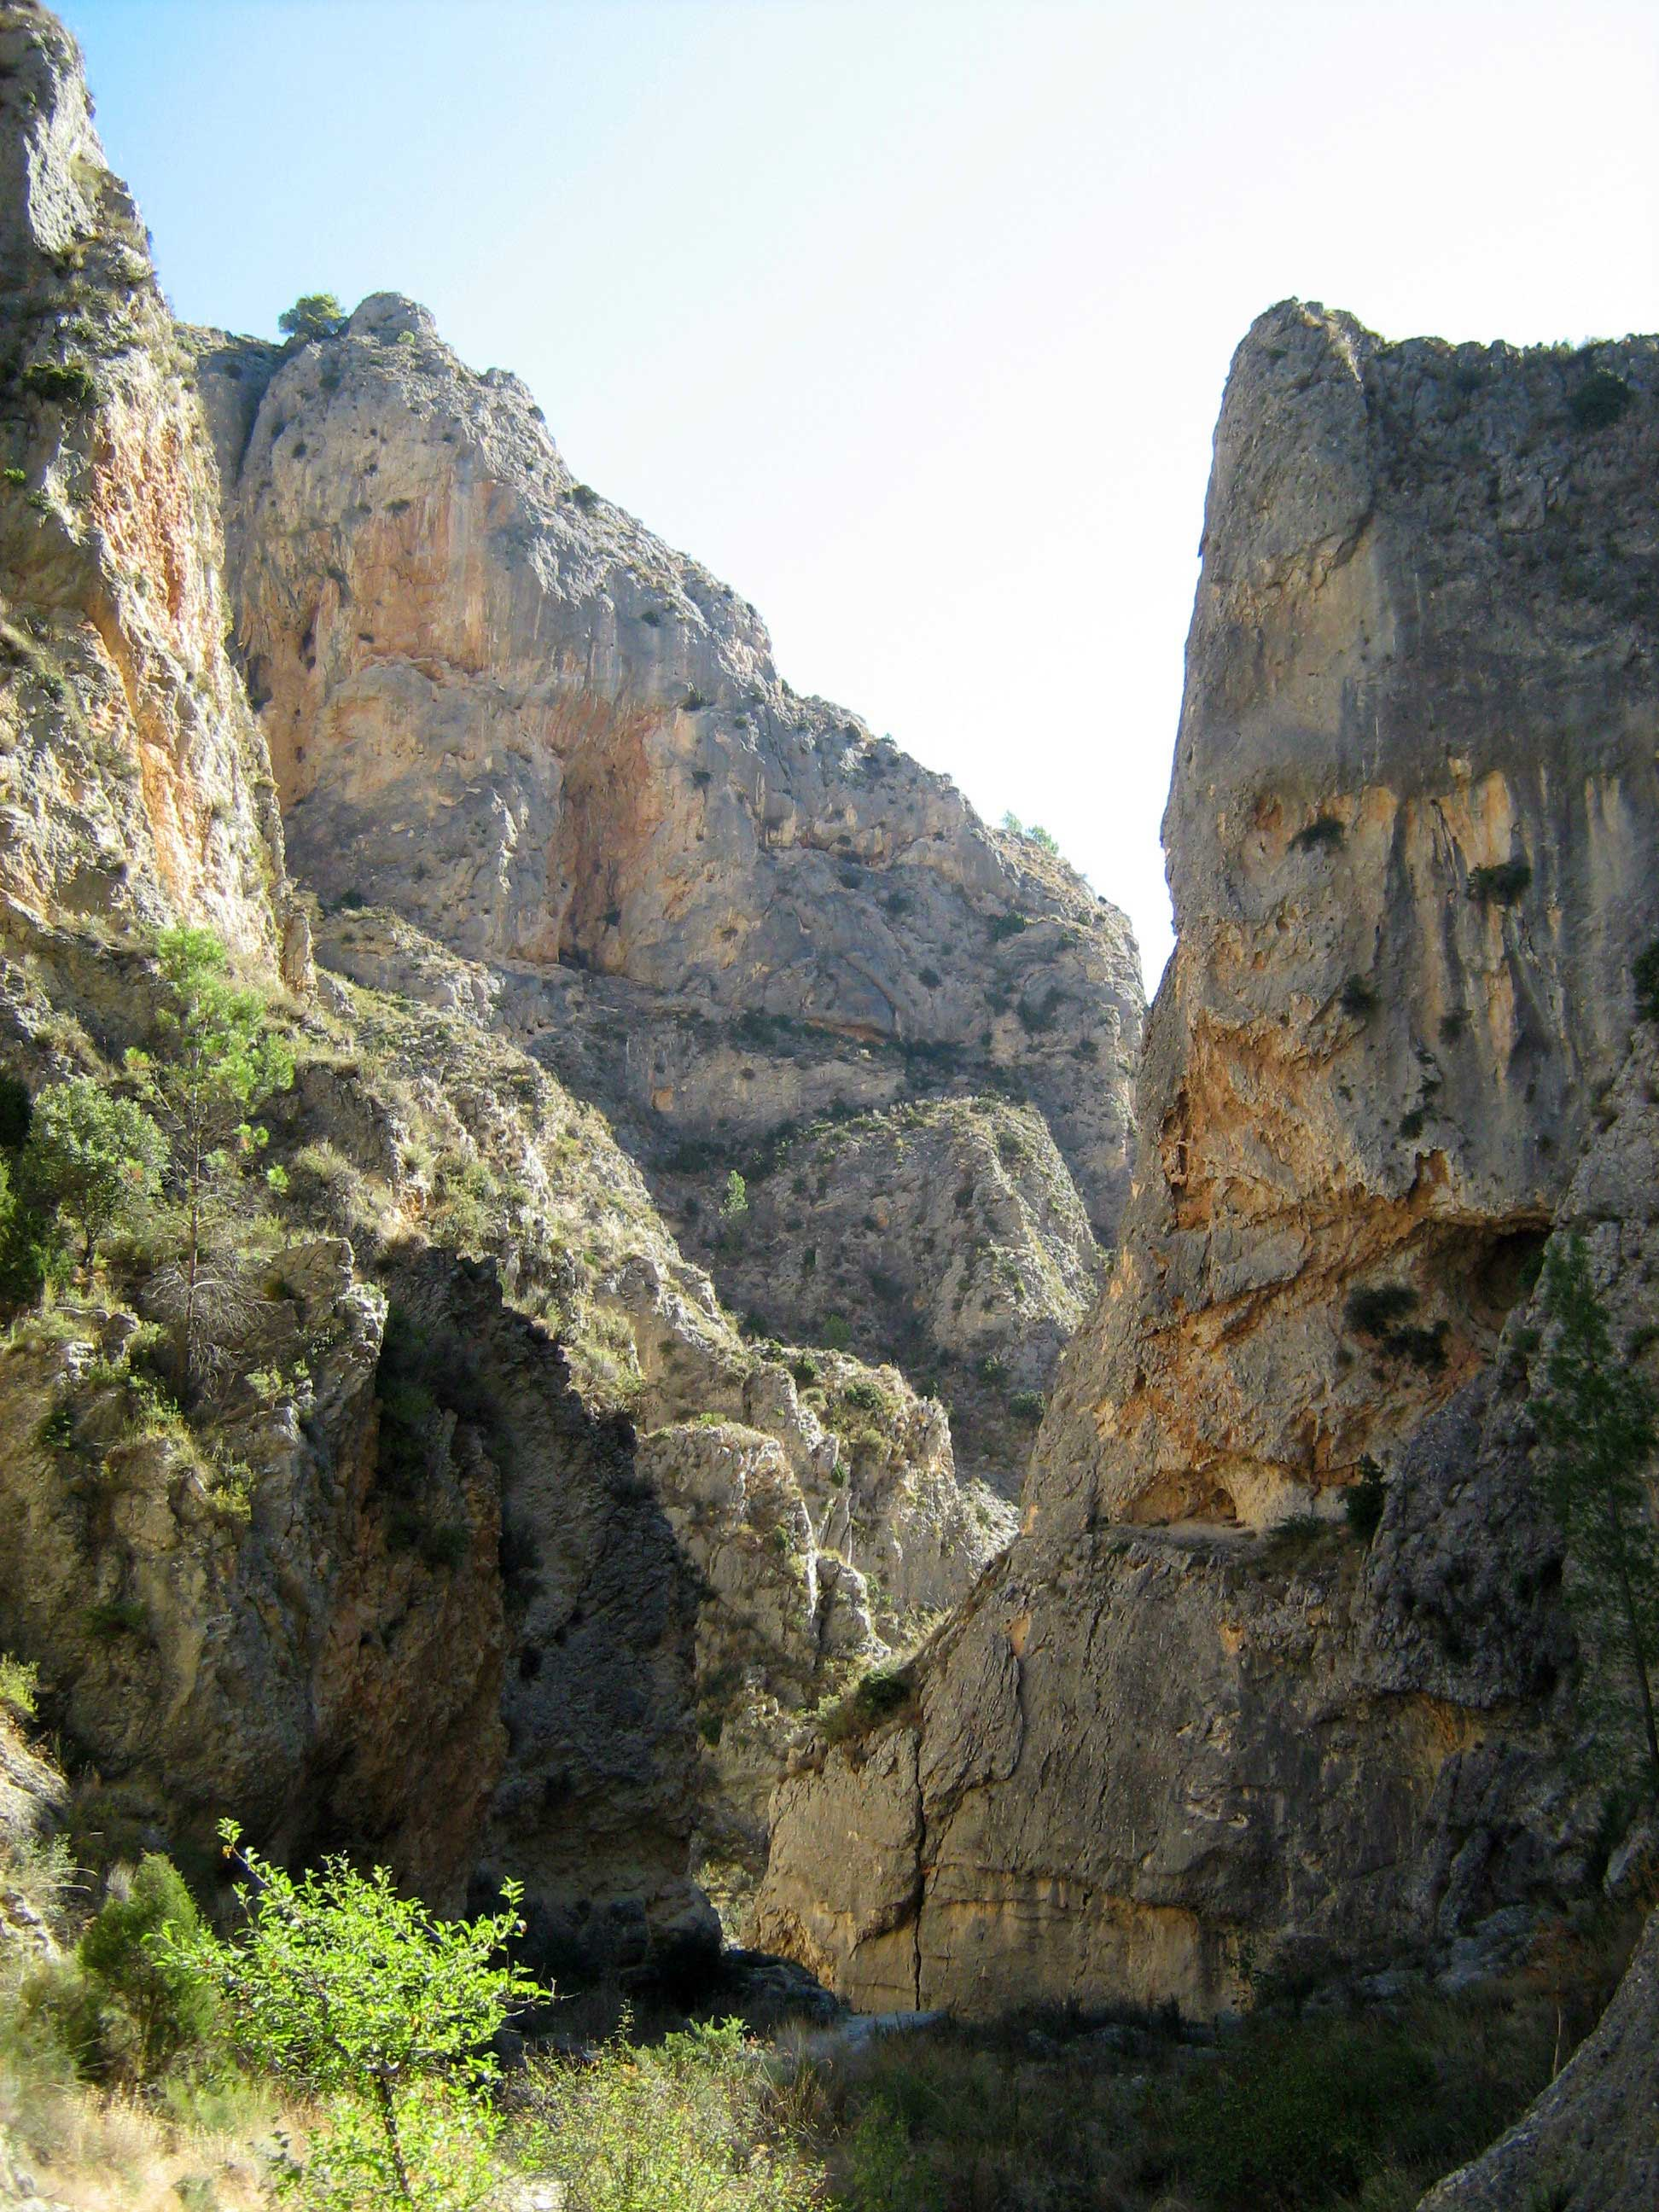 The mountainous sierras of the Valencia region provide habitat for some specialist highland bird species